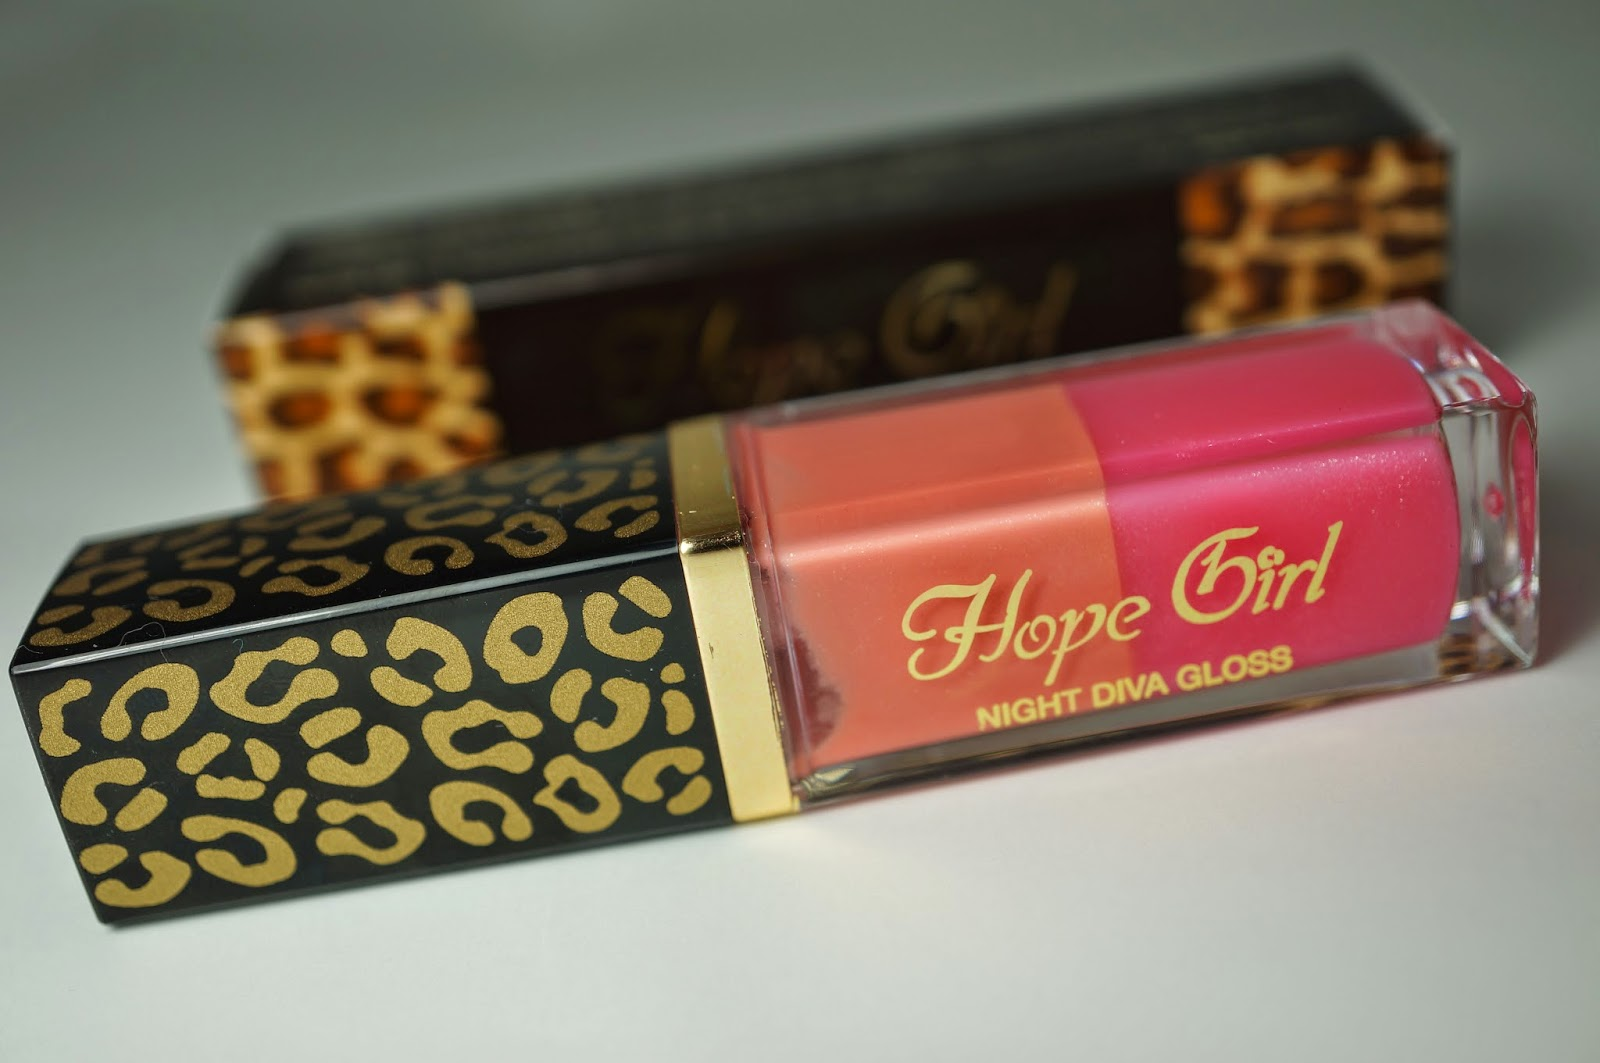 Memebox Special #16 OMG Box Unboxing Review Hope Girl Night Diva Gloss Pink Drop